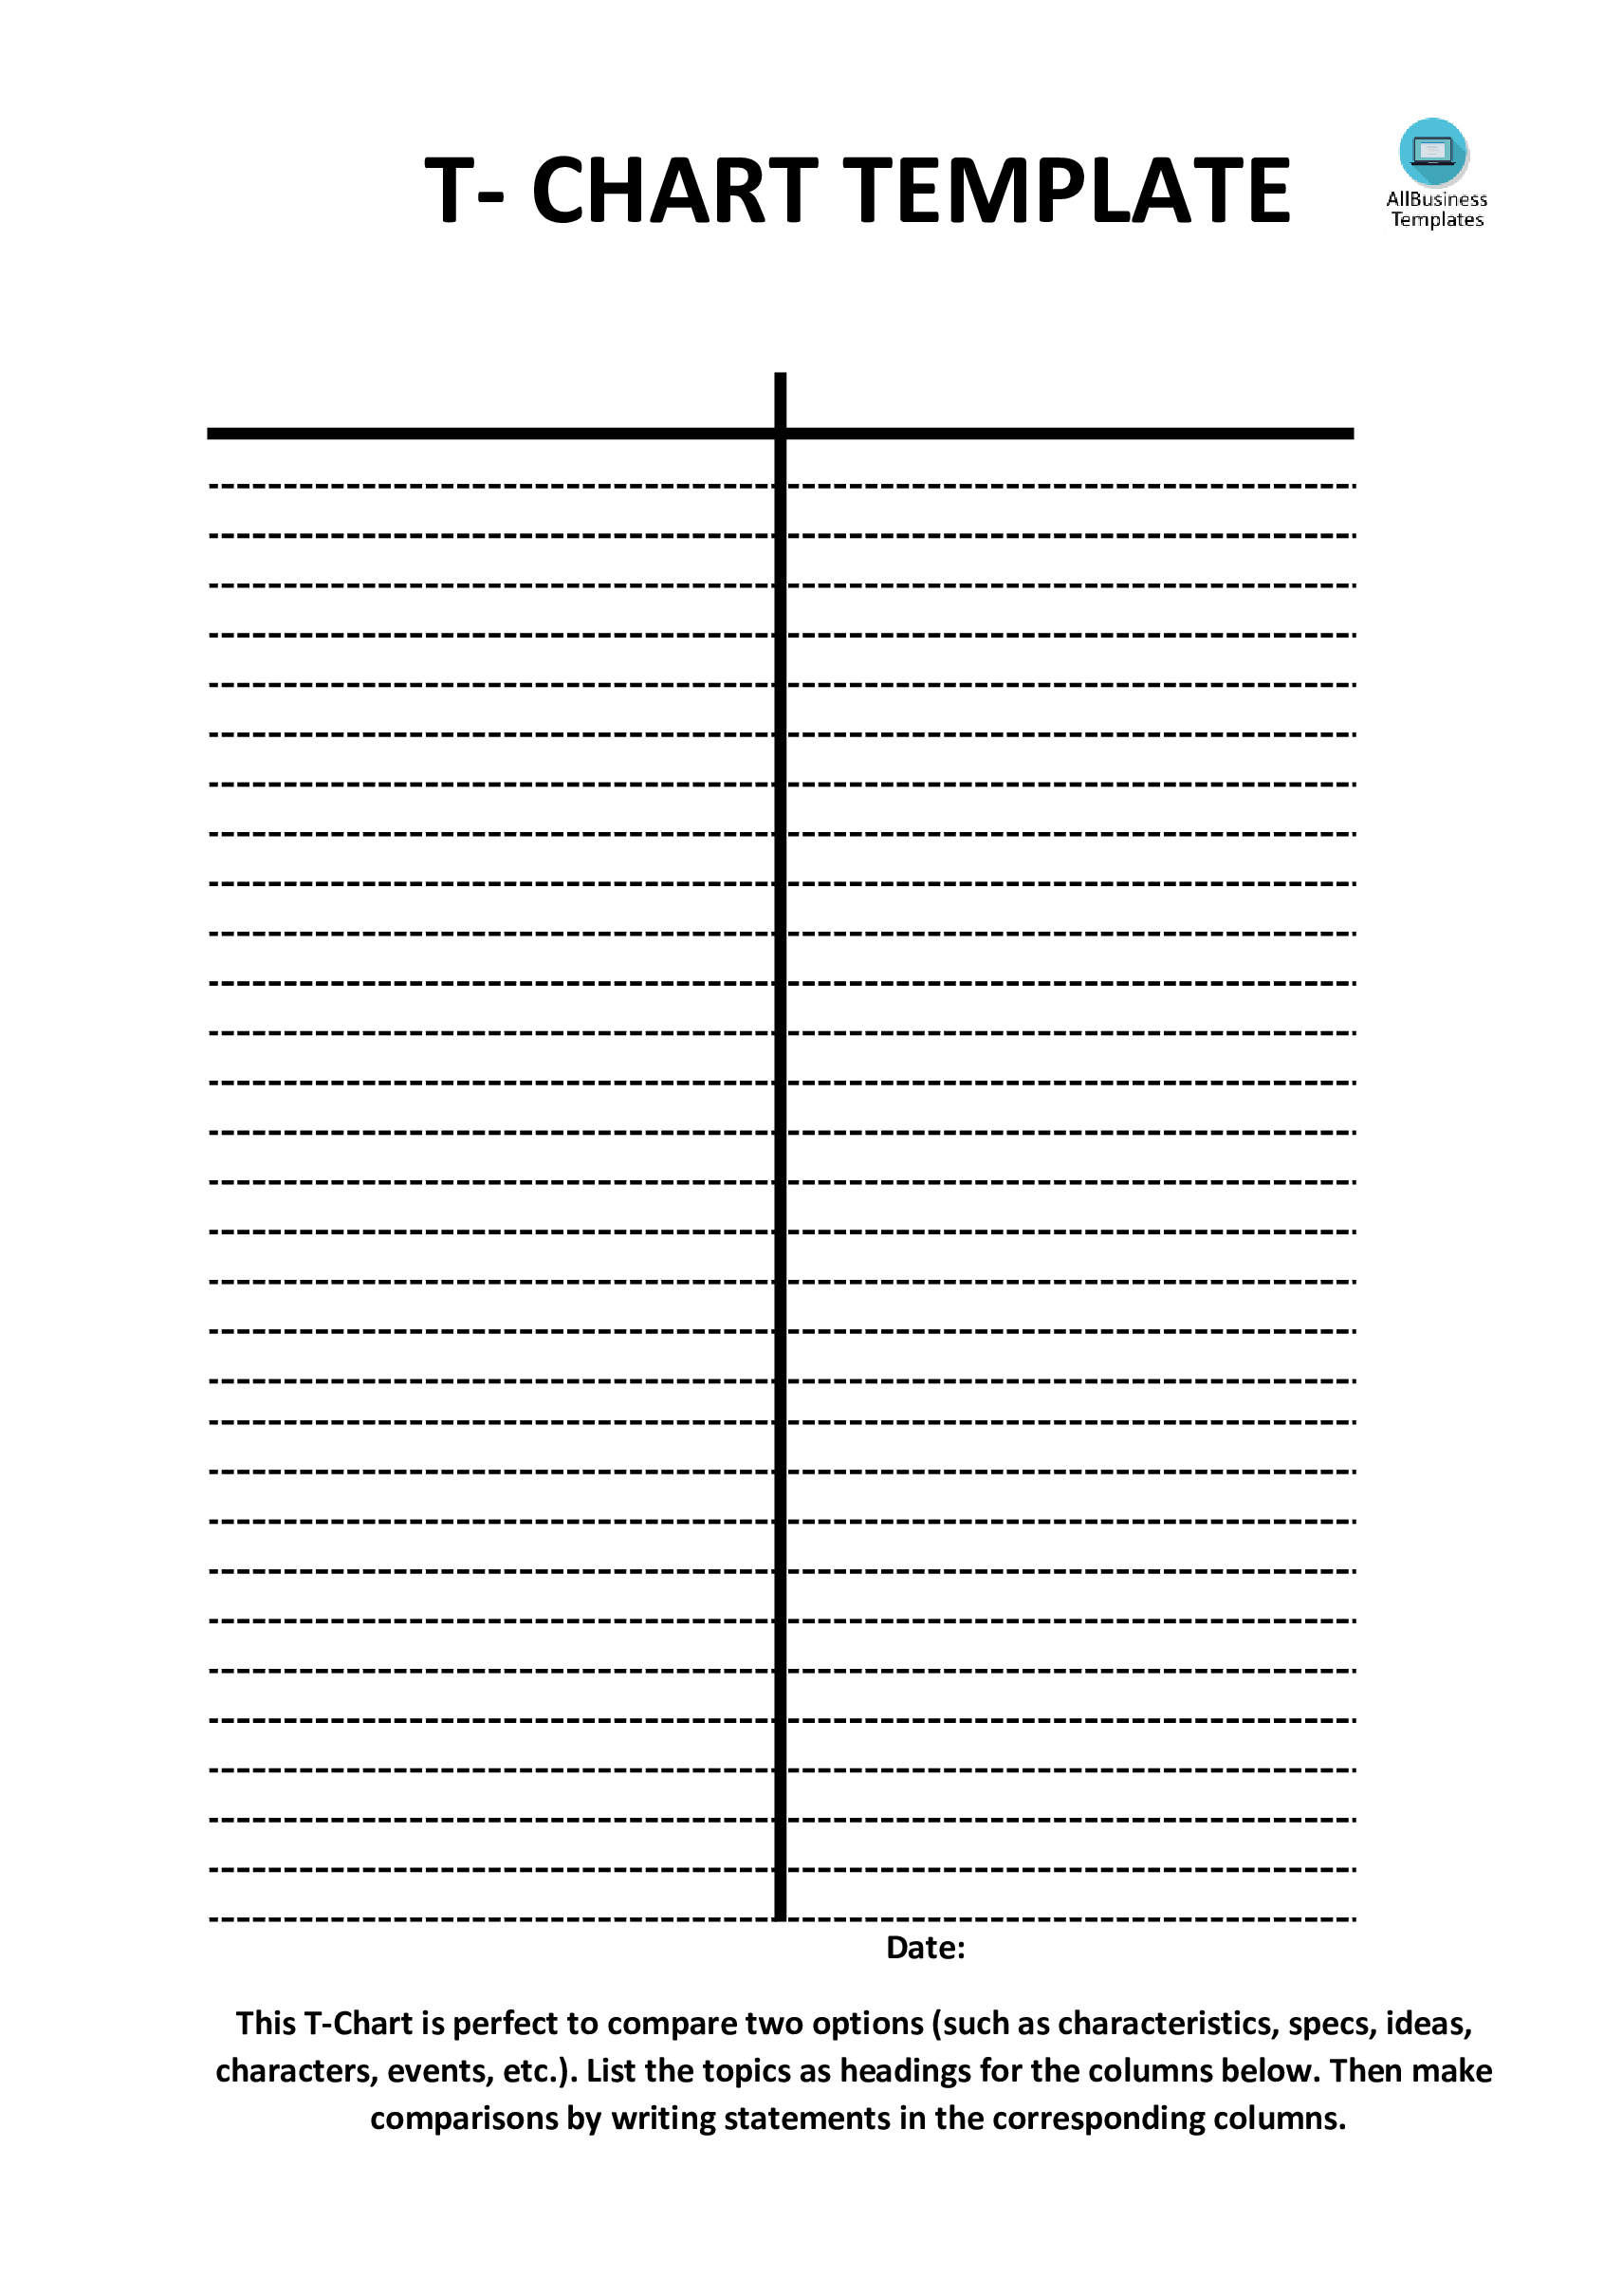 T Chart Template Vertically Positioned